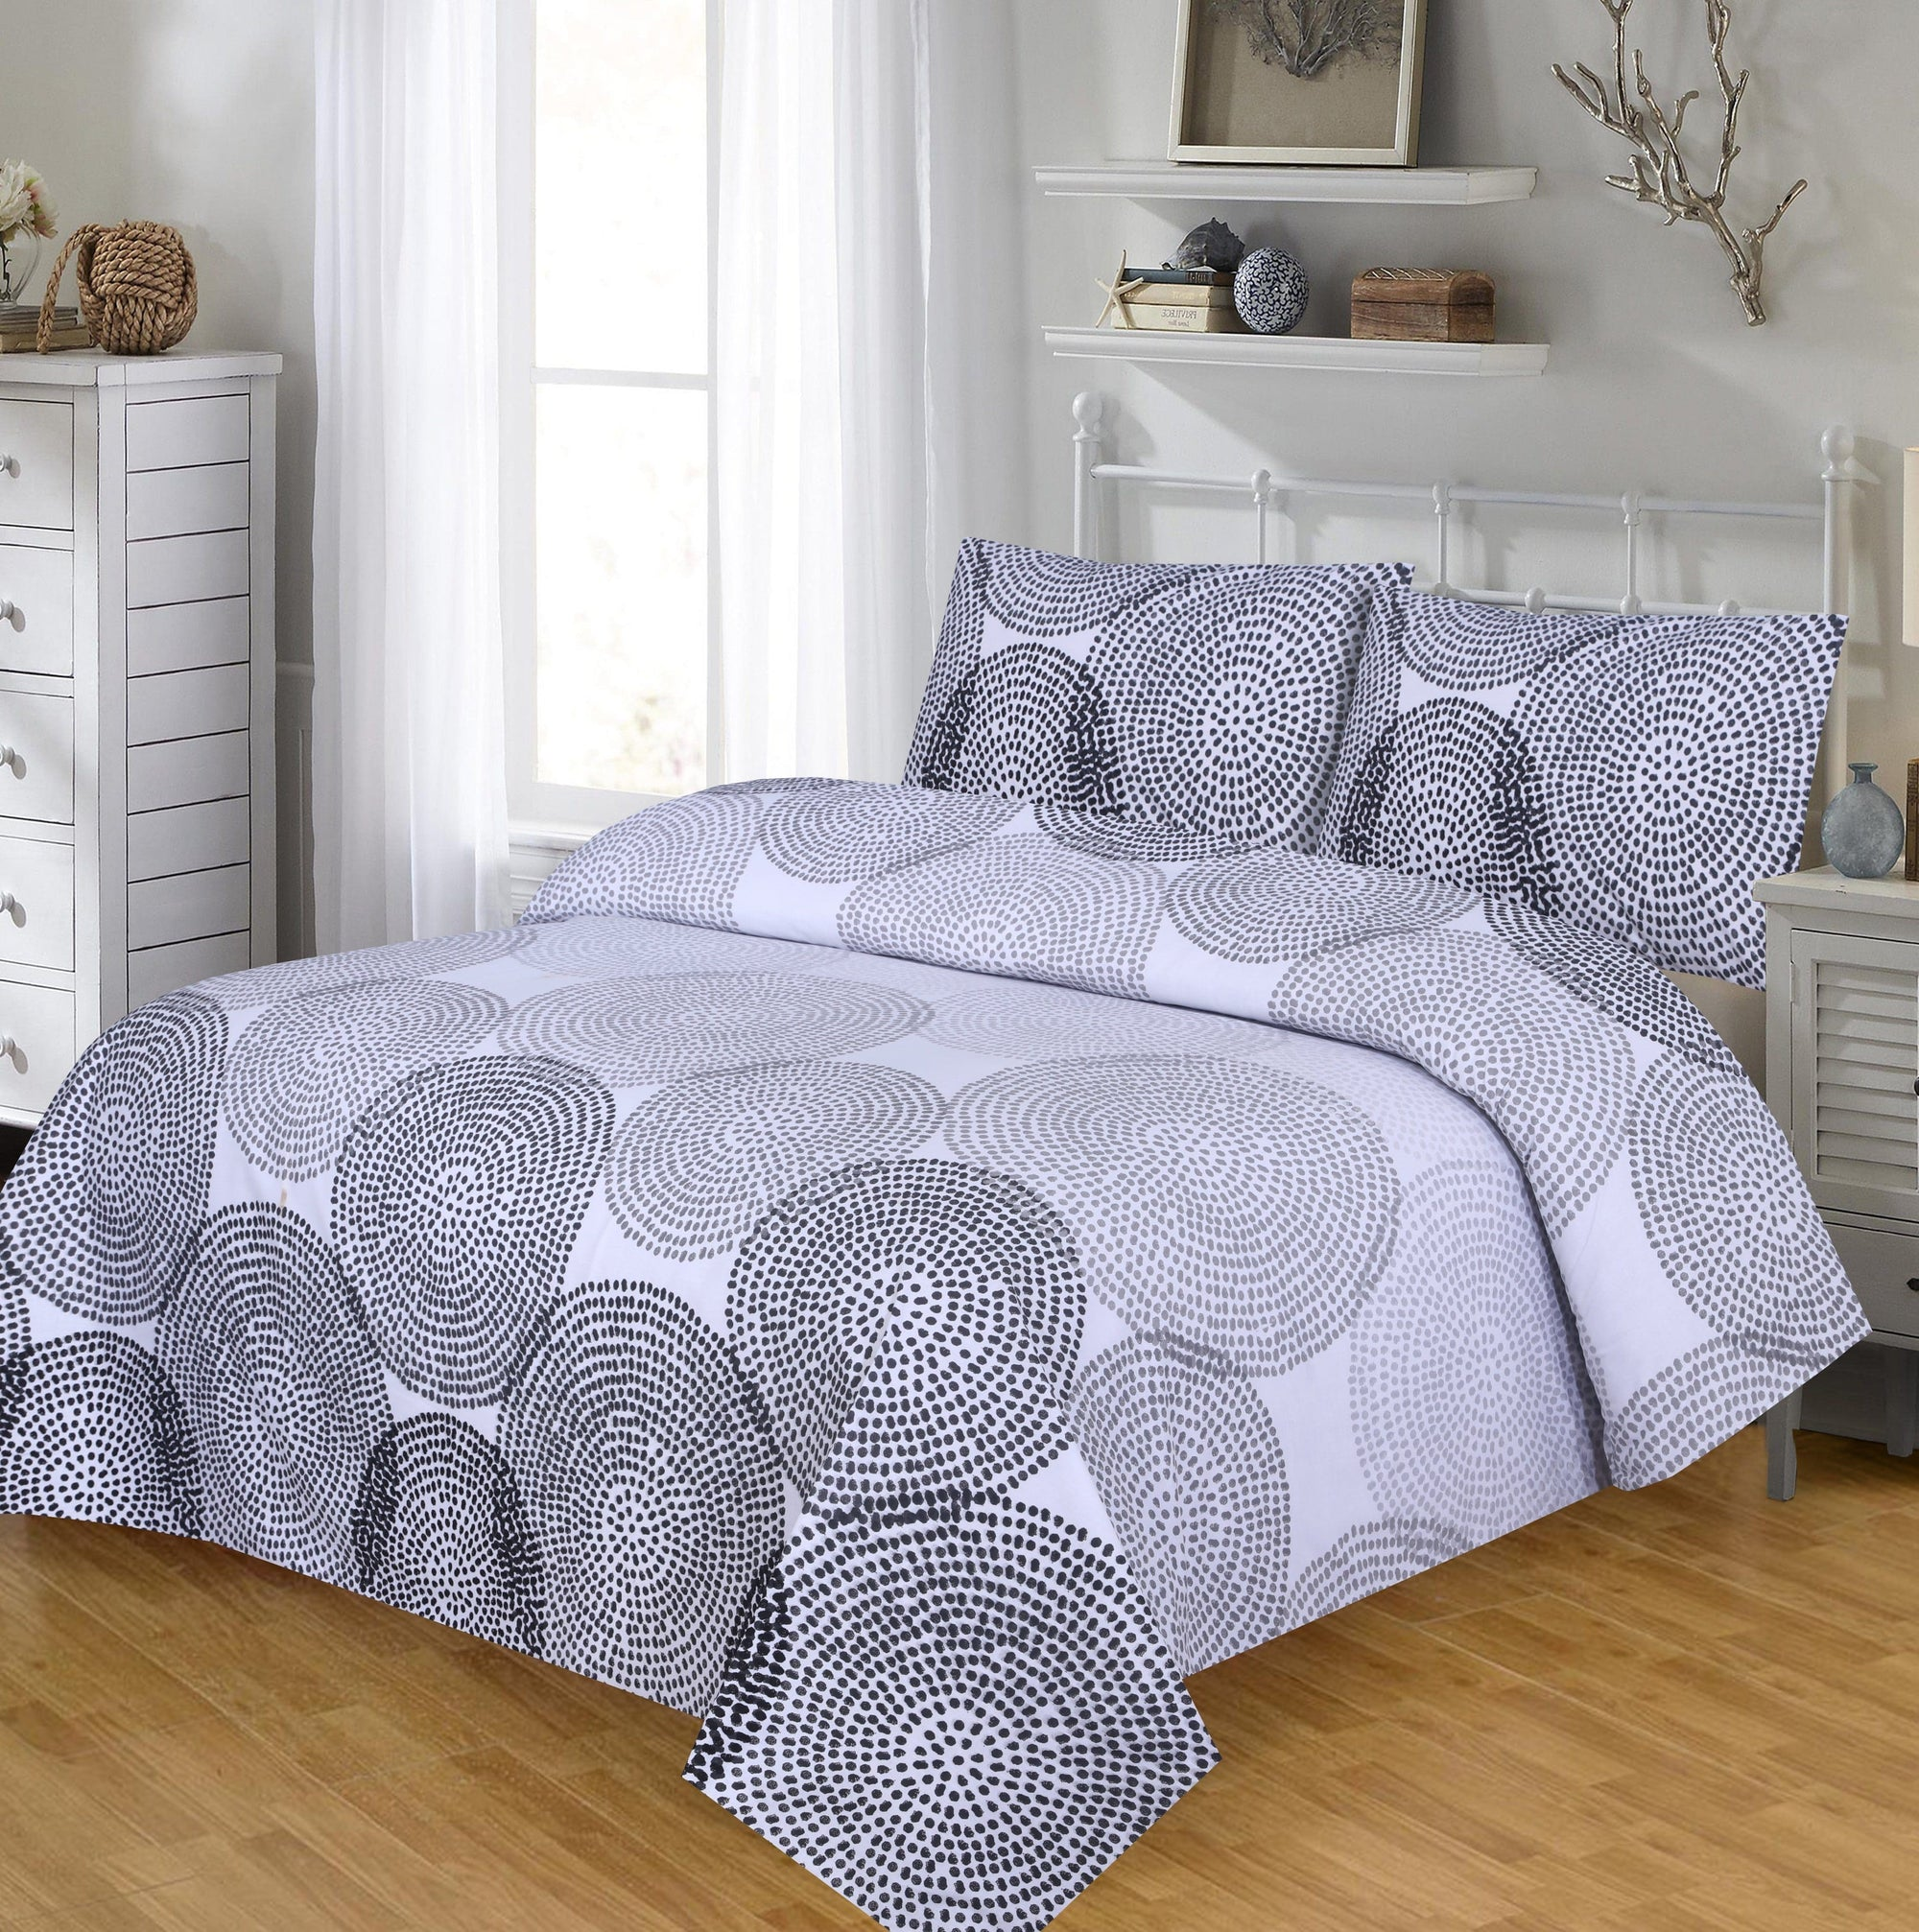 Grace D202-Cotton PC King Size Bedsheet with 2 Pillow Covers.